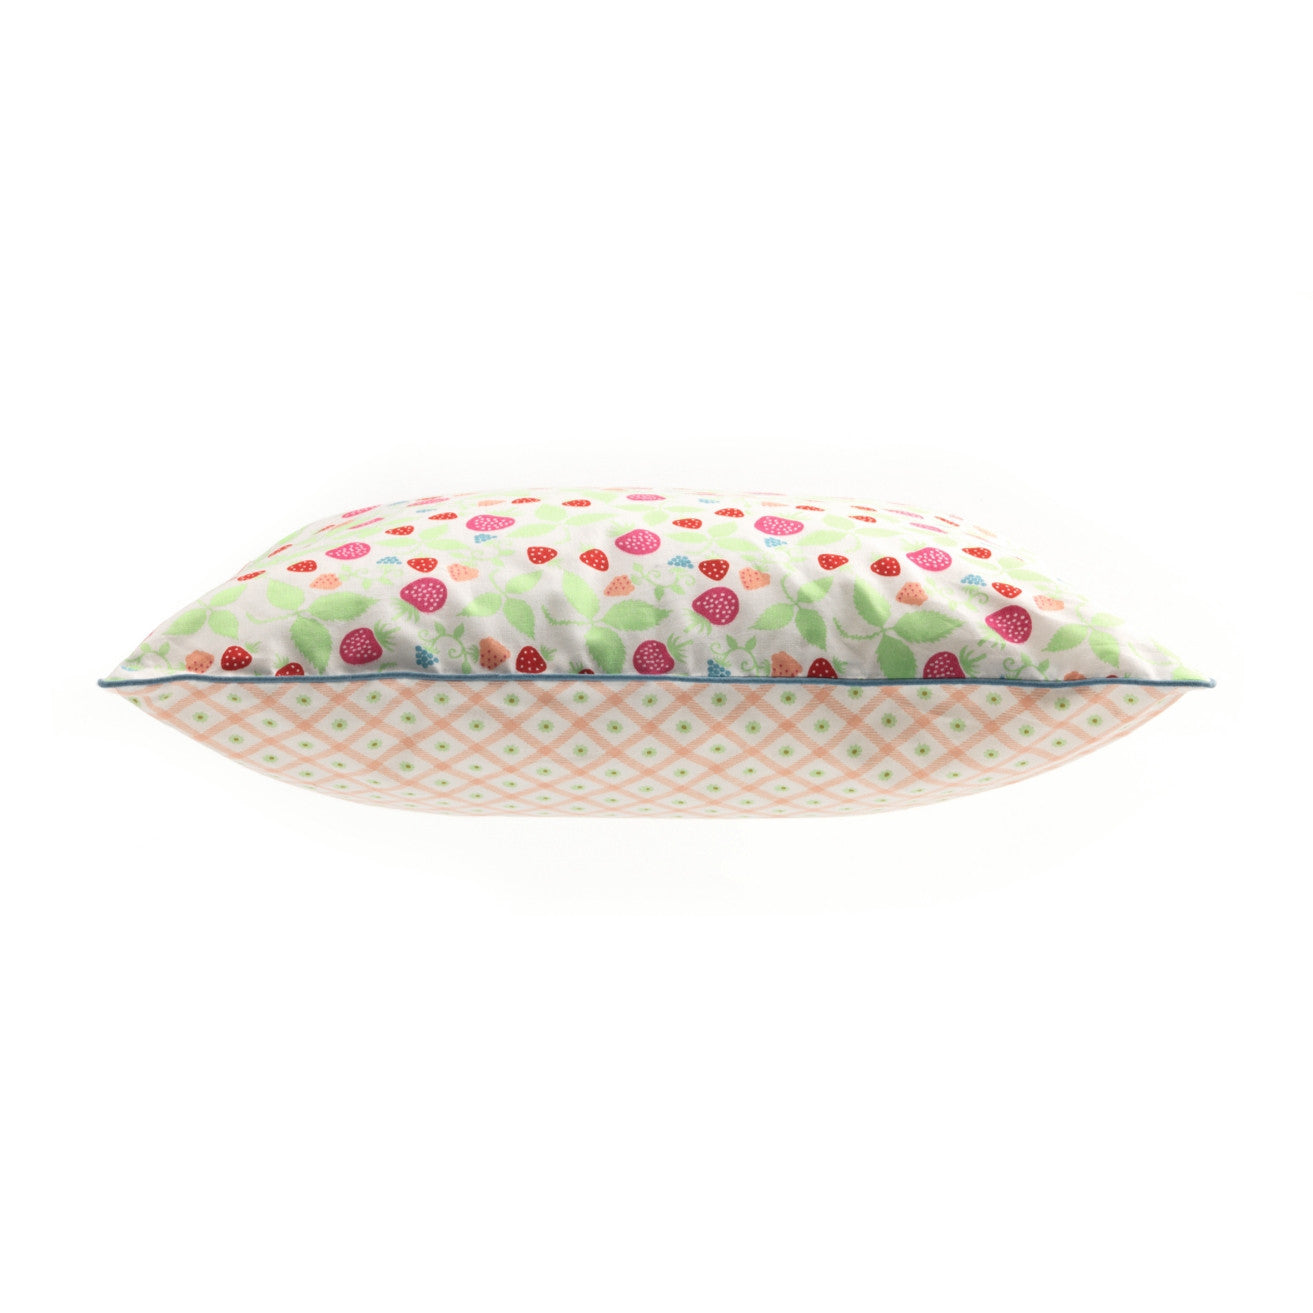 Djeco Cushion Raspberries - Little Citizens Boutique  - 1